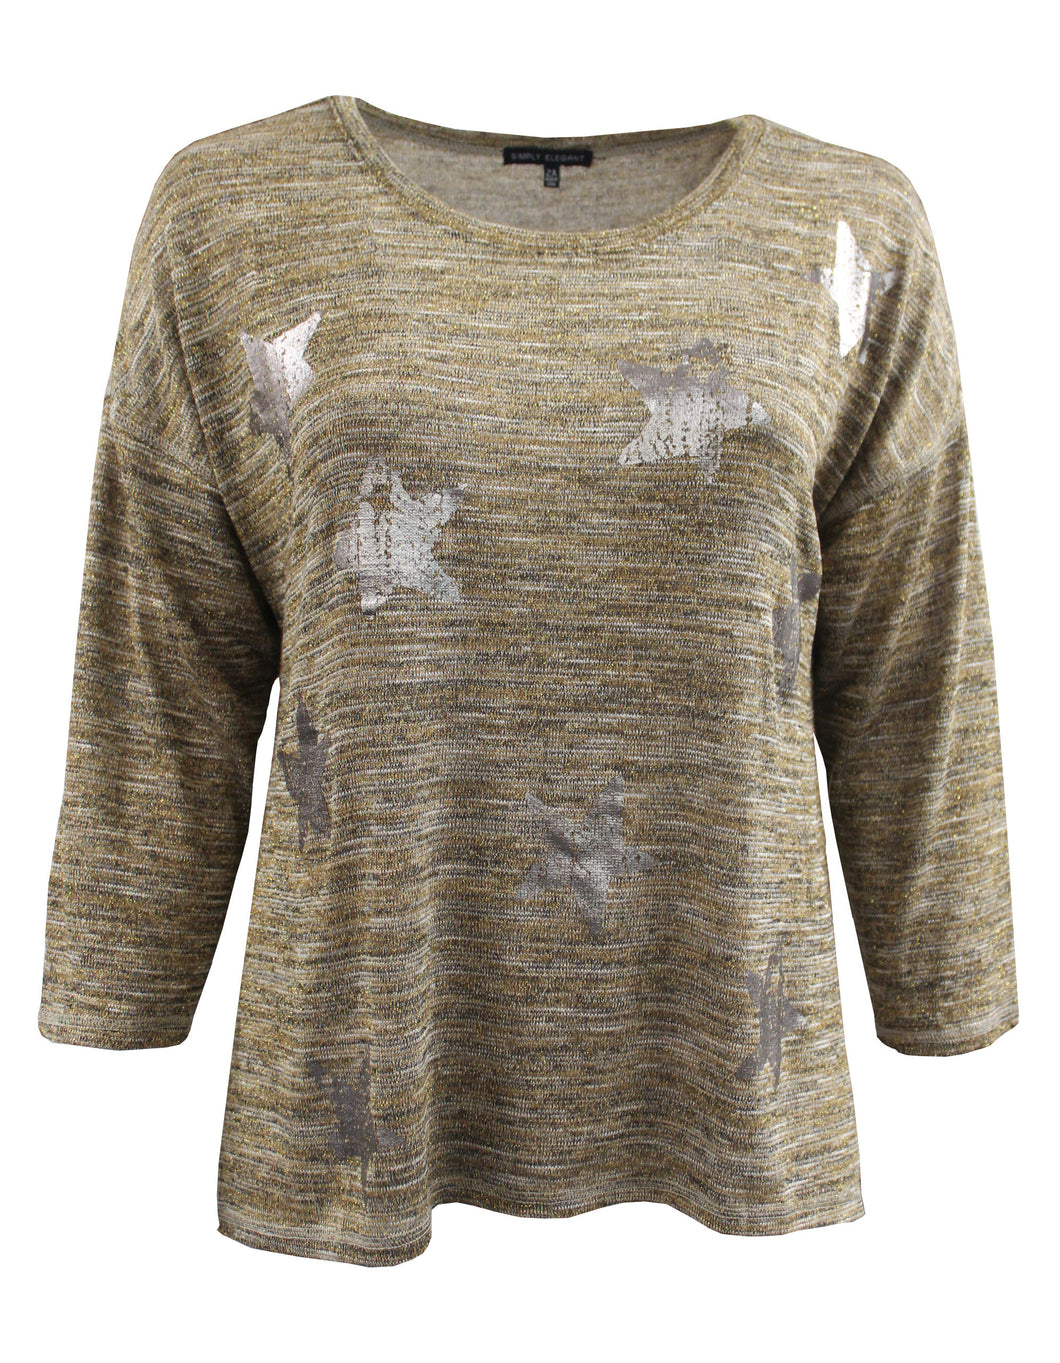 Metallic Design on Heathered Long Sleeve Tee